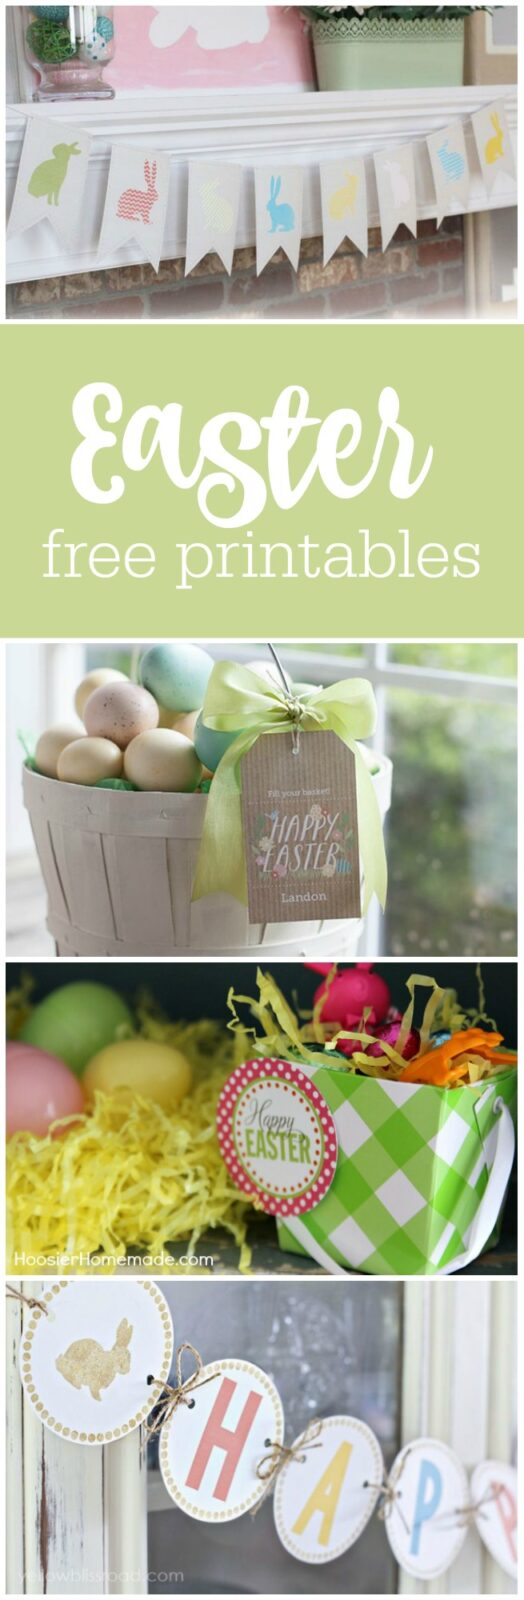 Easter free printables curated by The Party Teacher